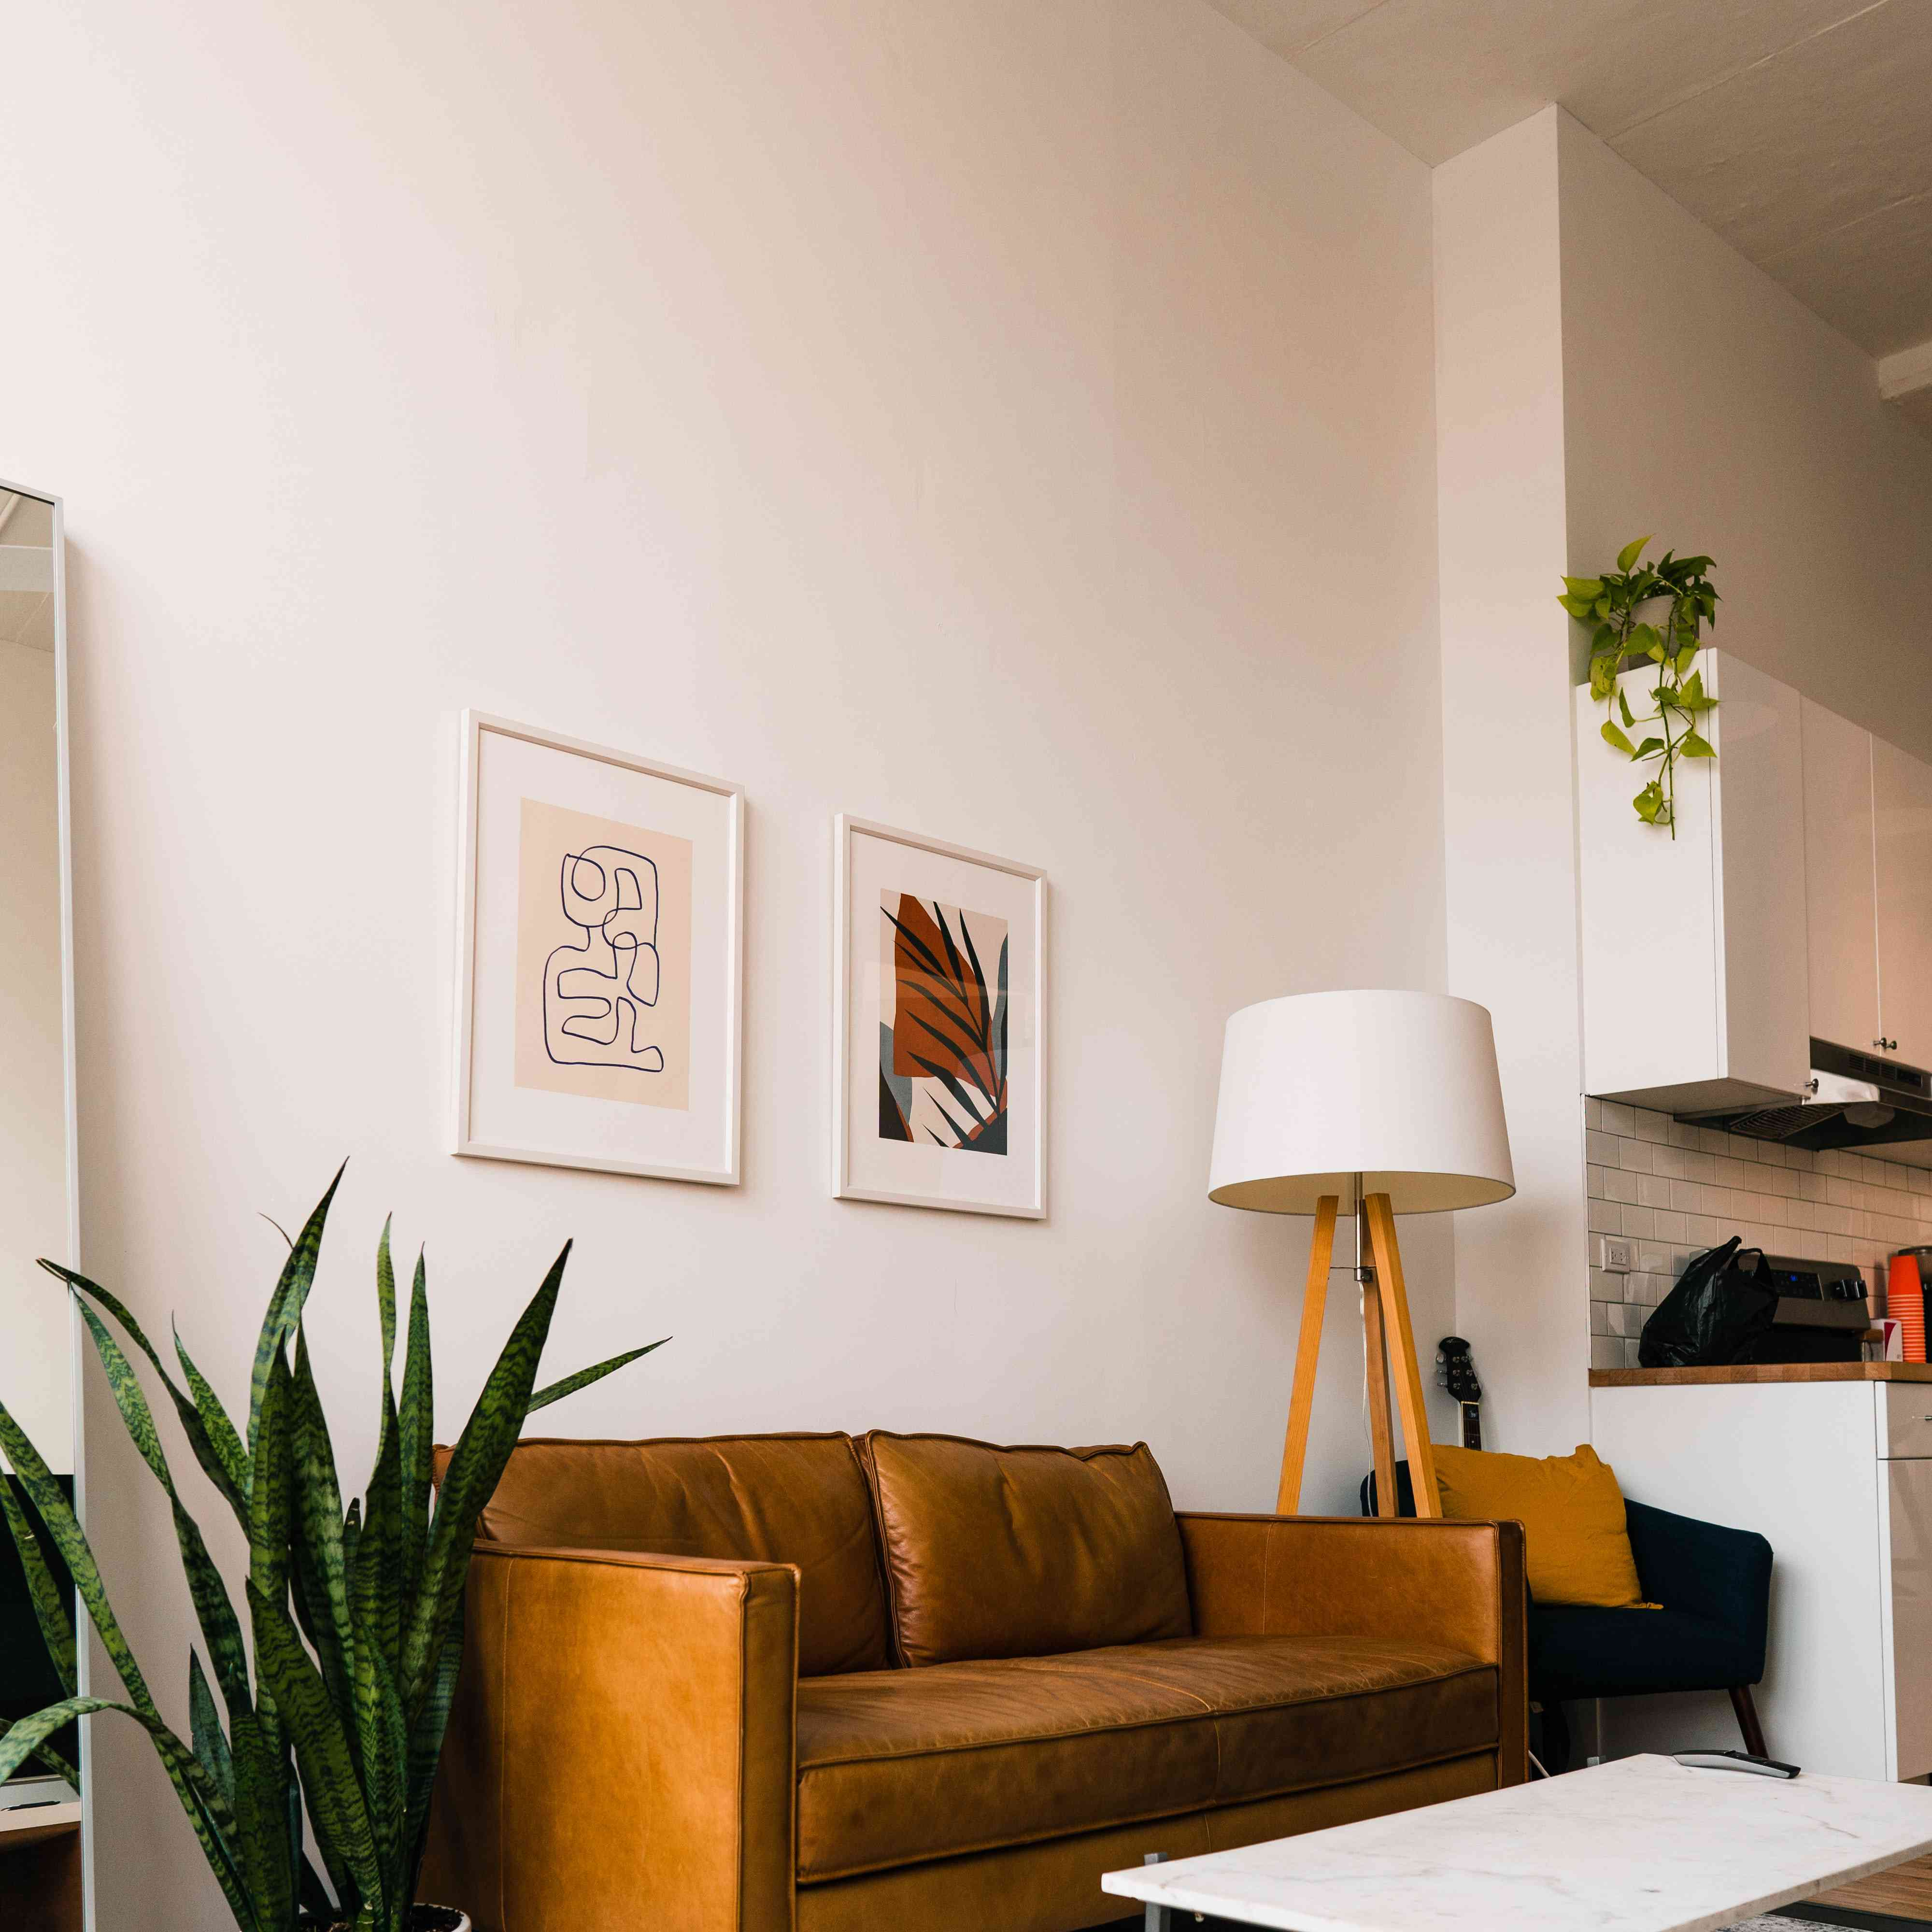 Living room with leather sofa, plant, and artwork